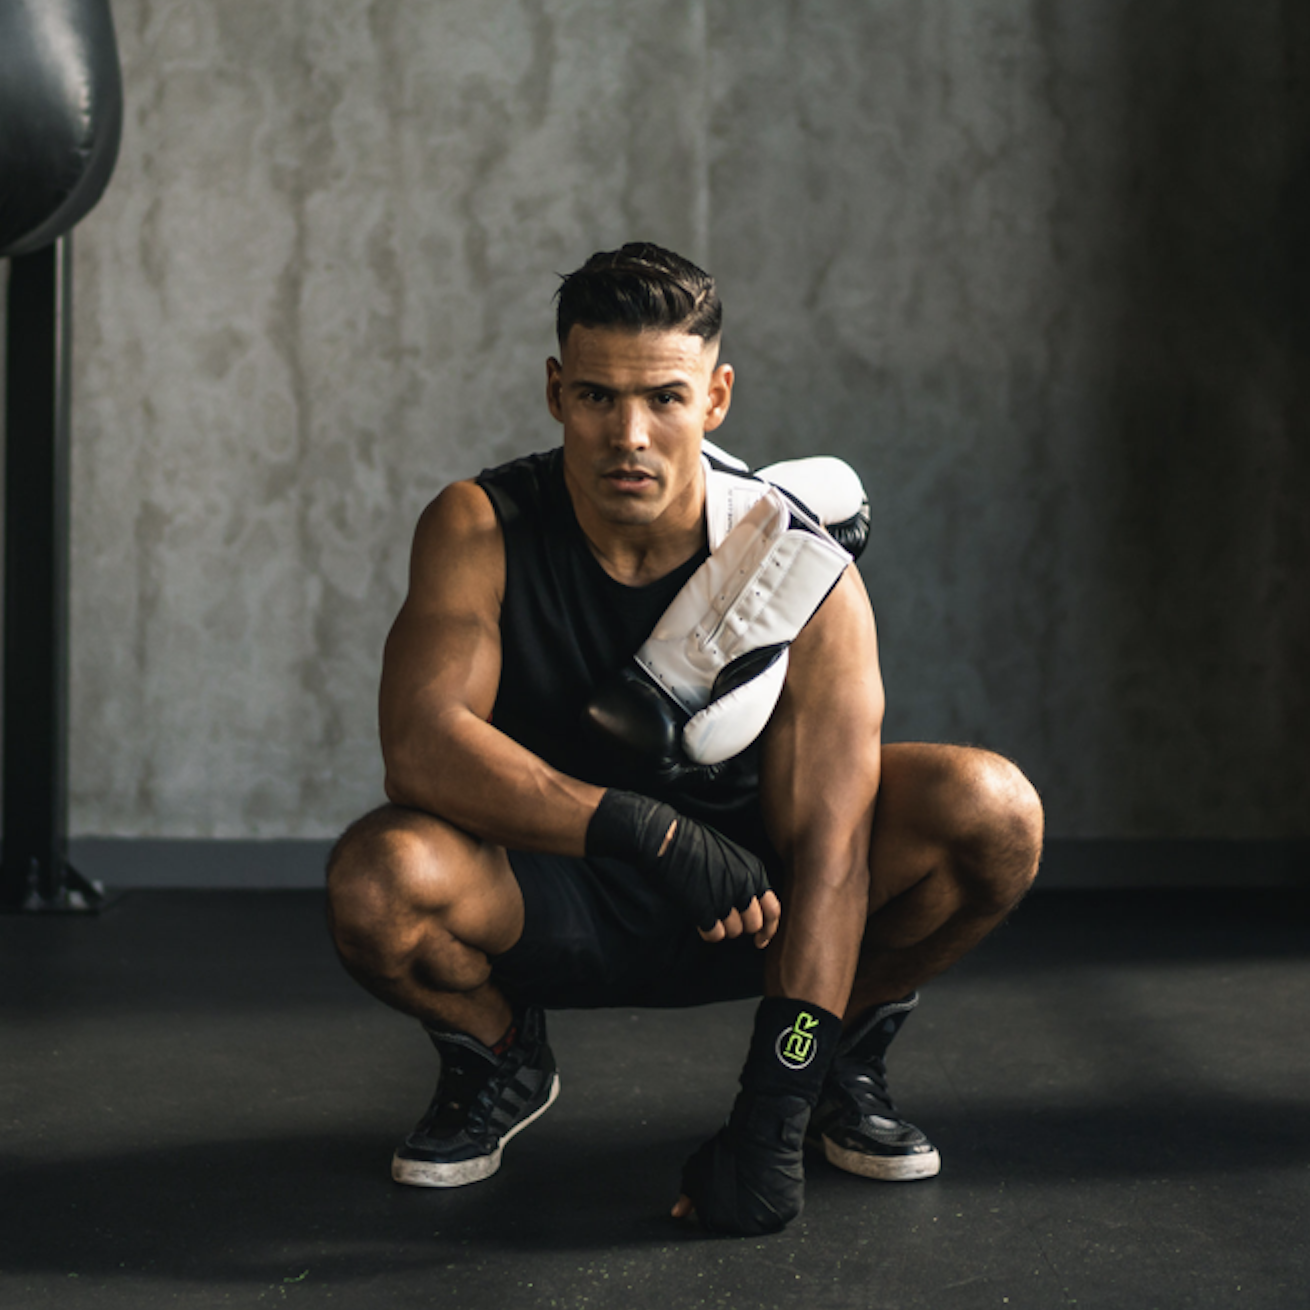 Male-boxing-bondijunction-fitness-training-gym.png